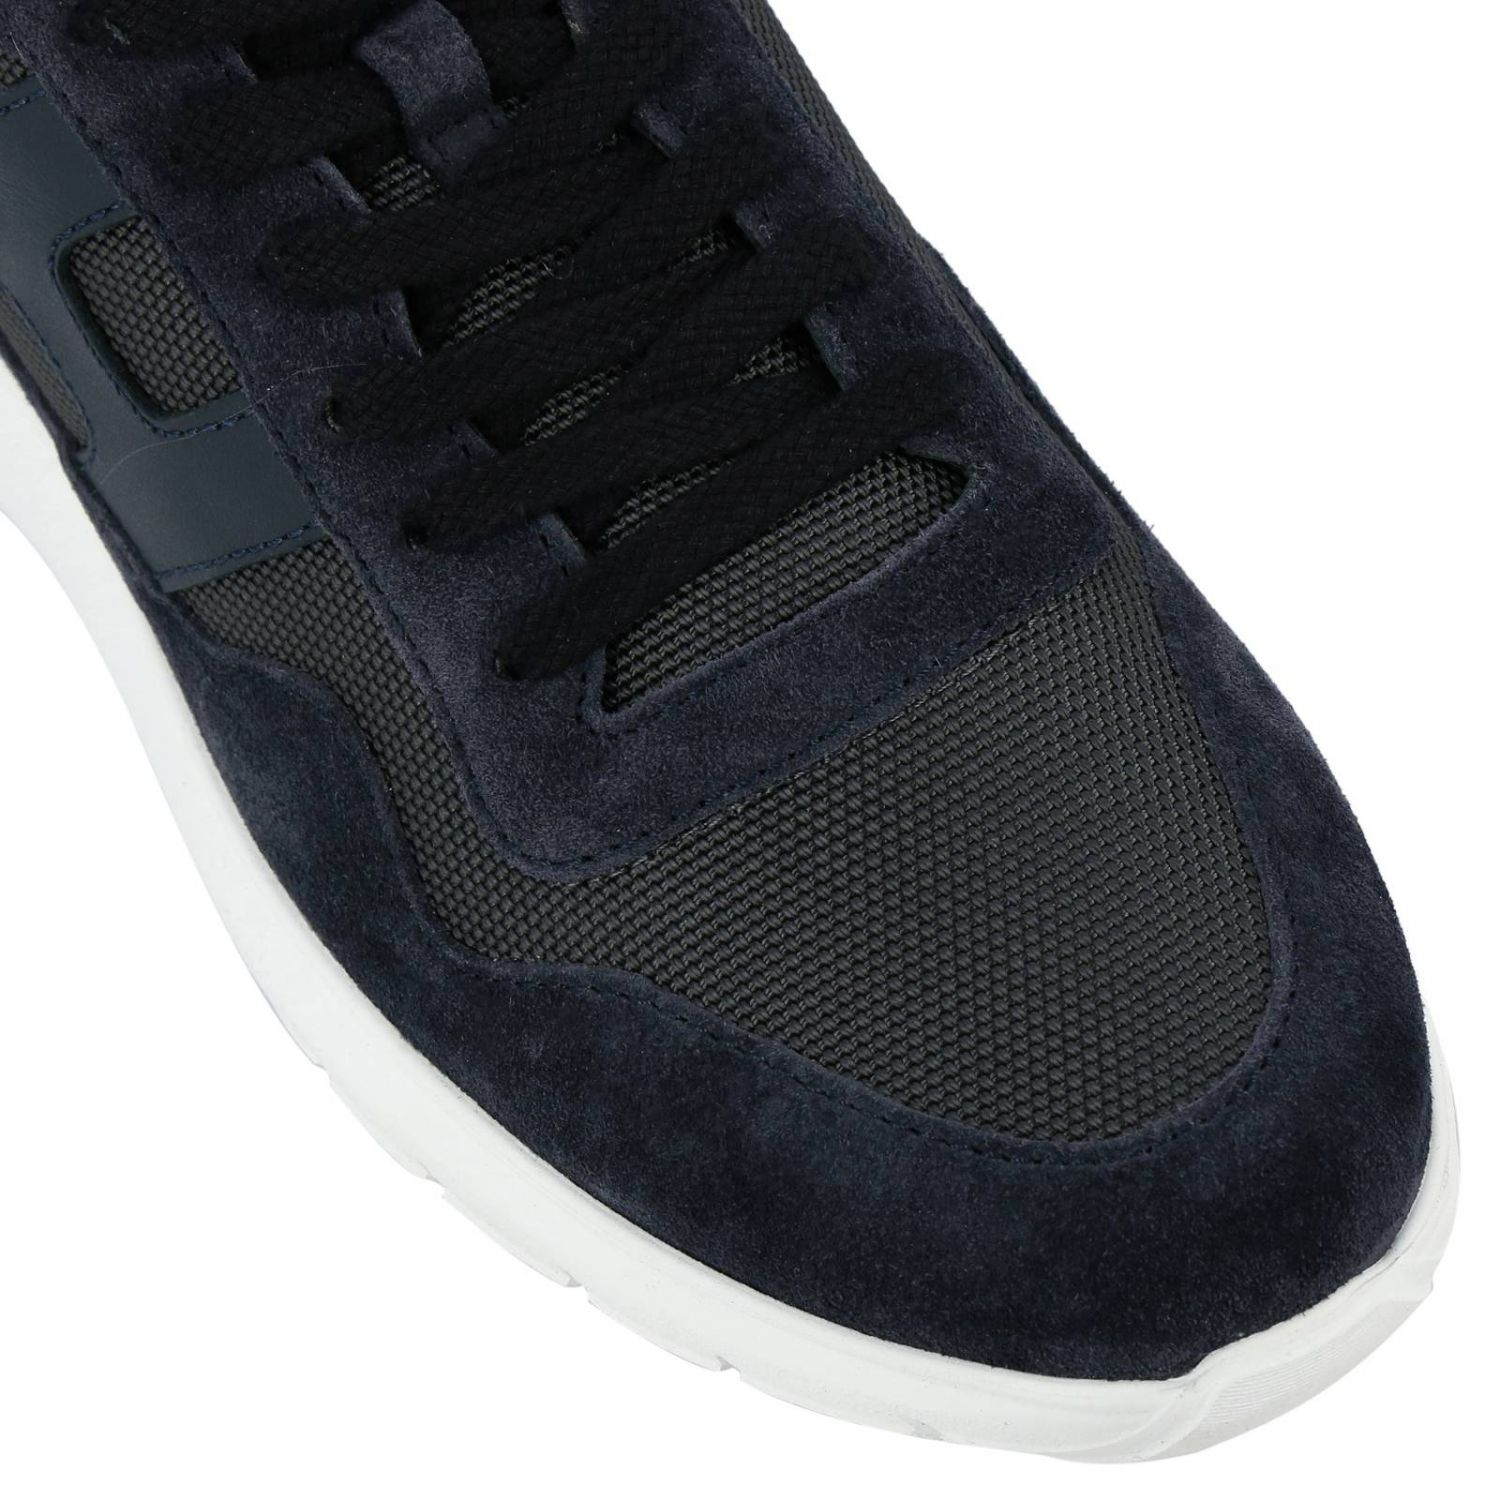 Sneakers Cube 371 in camoscio e micro rete con big H blue 3